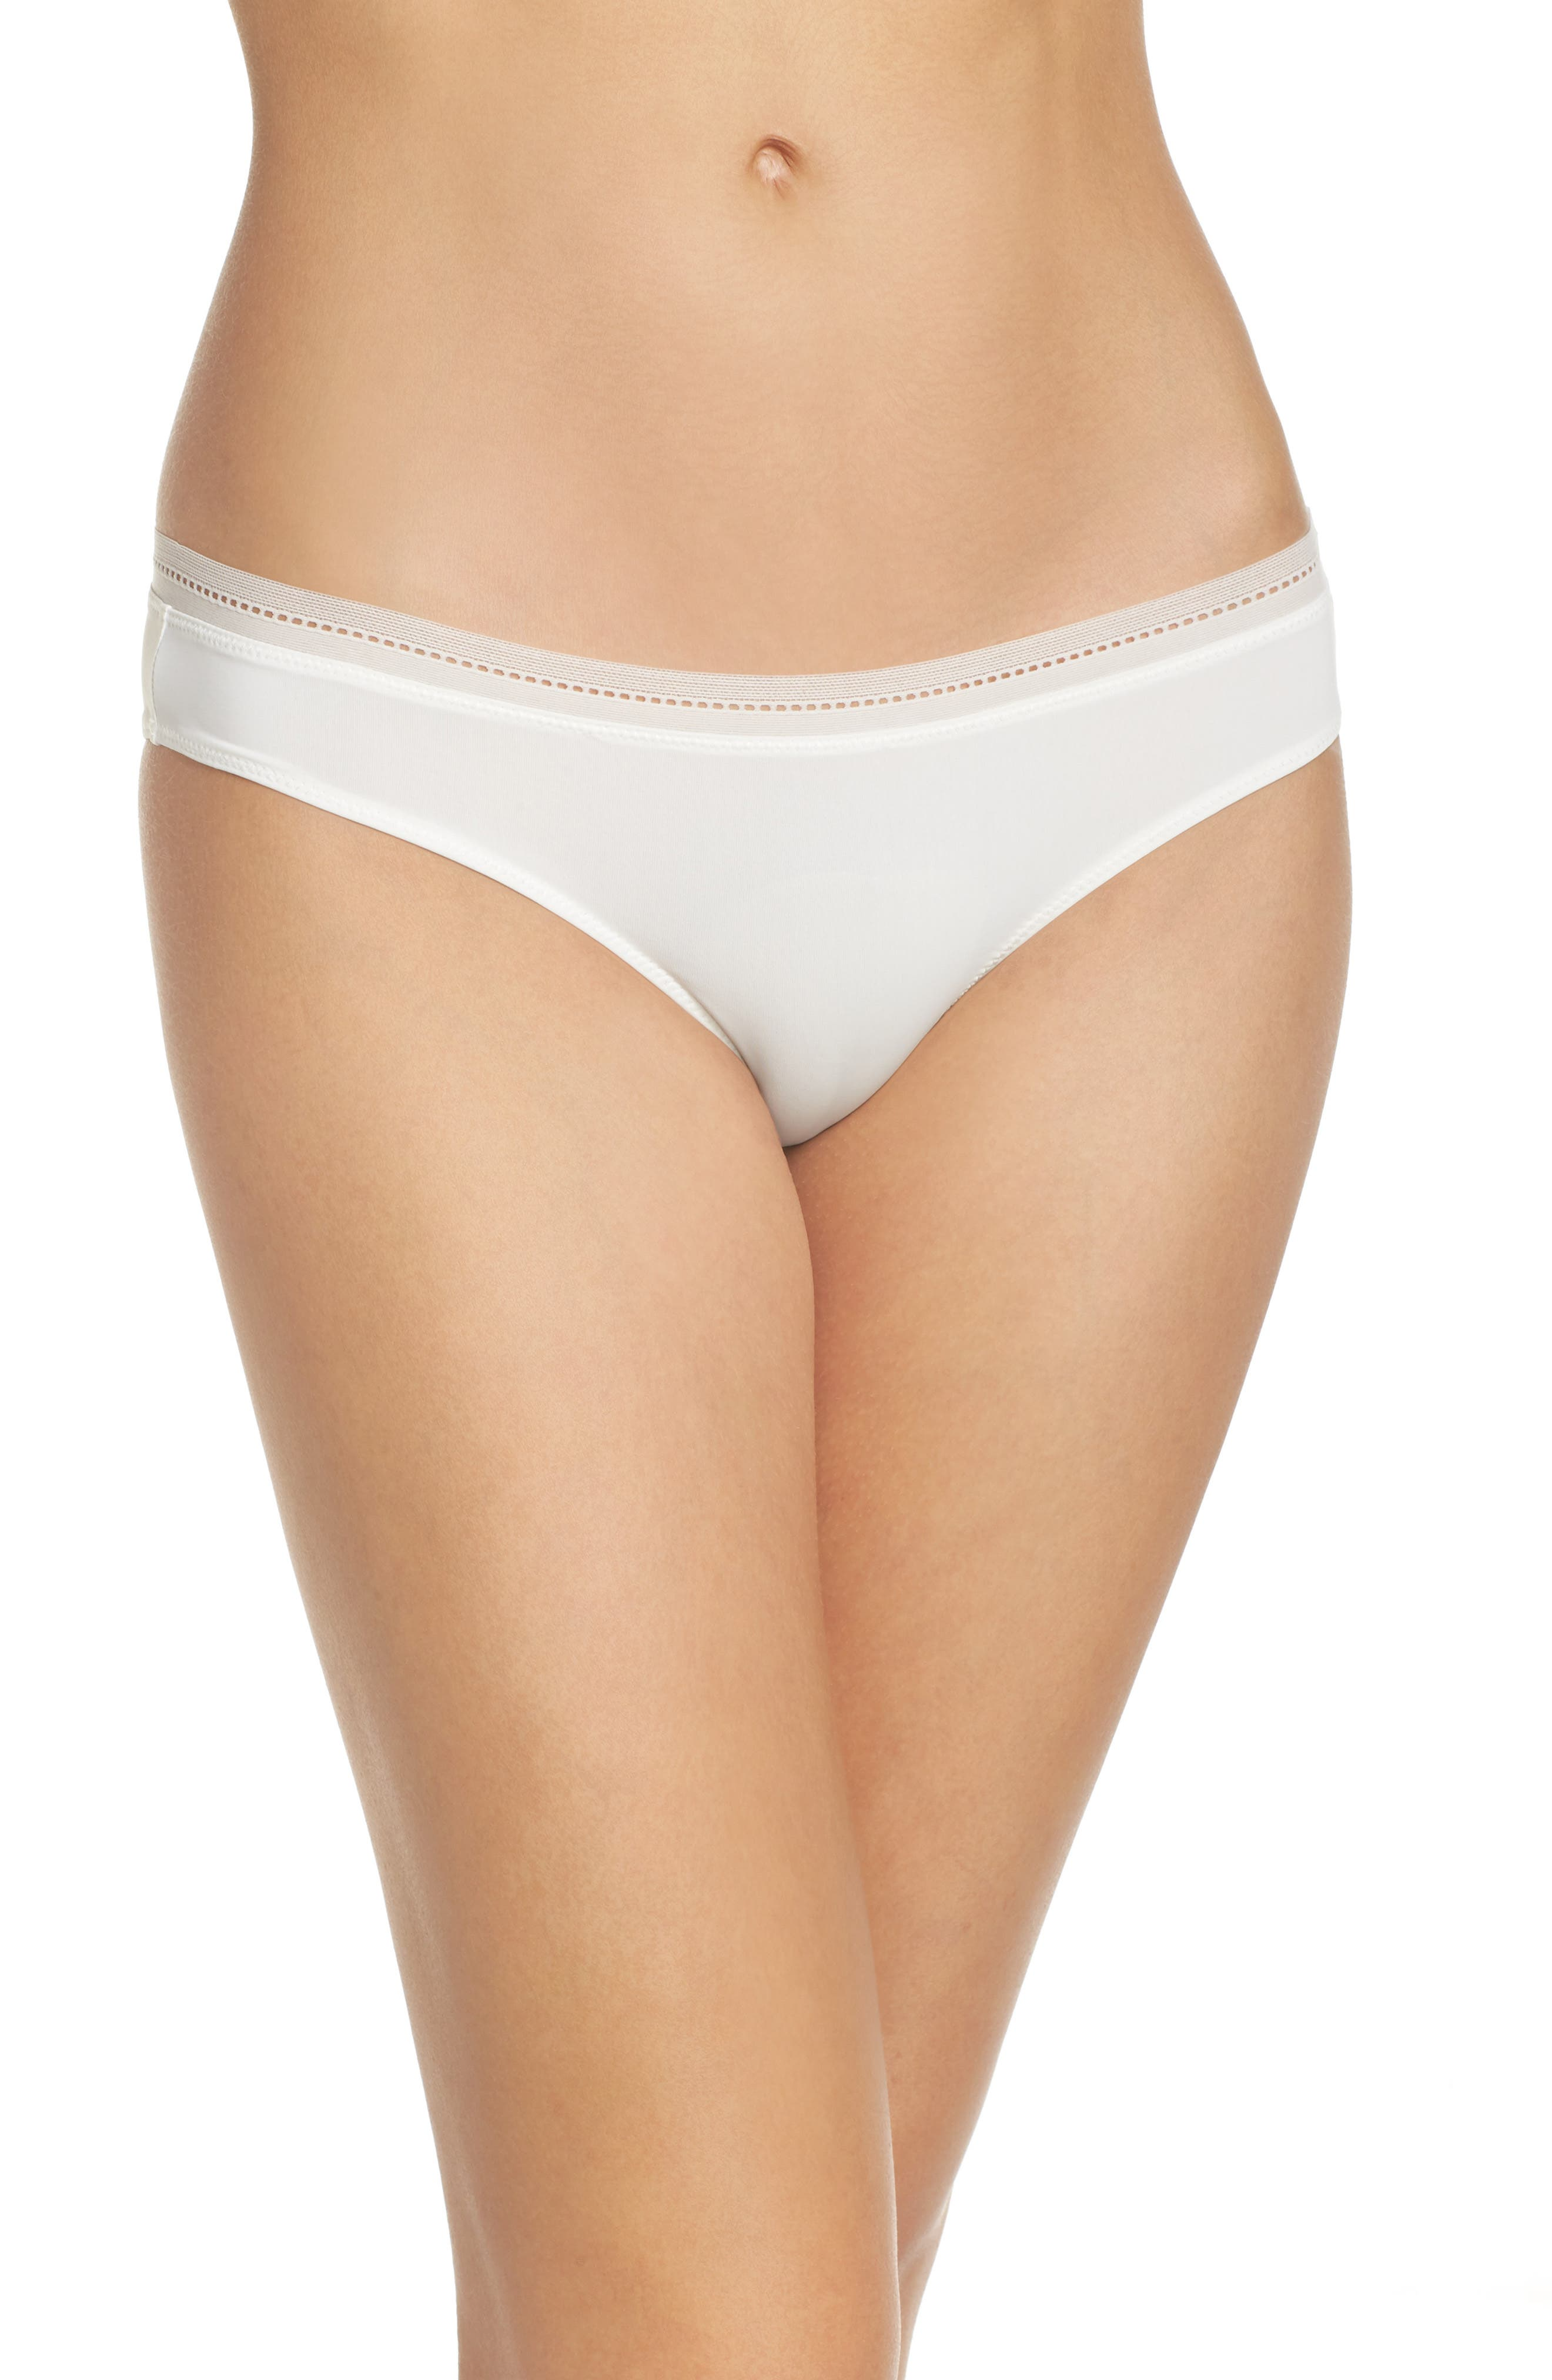 Intimately FP Truth Or Dare Tanga,                             Main thumbnail 1, color,                             Ivory